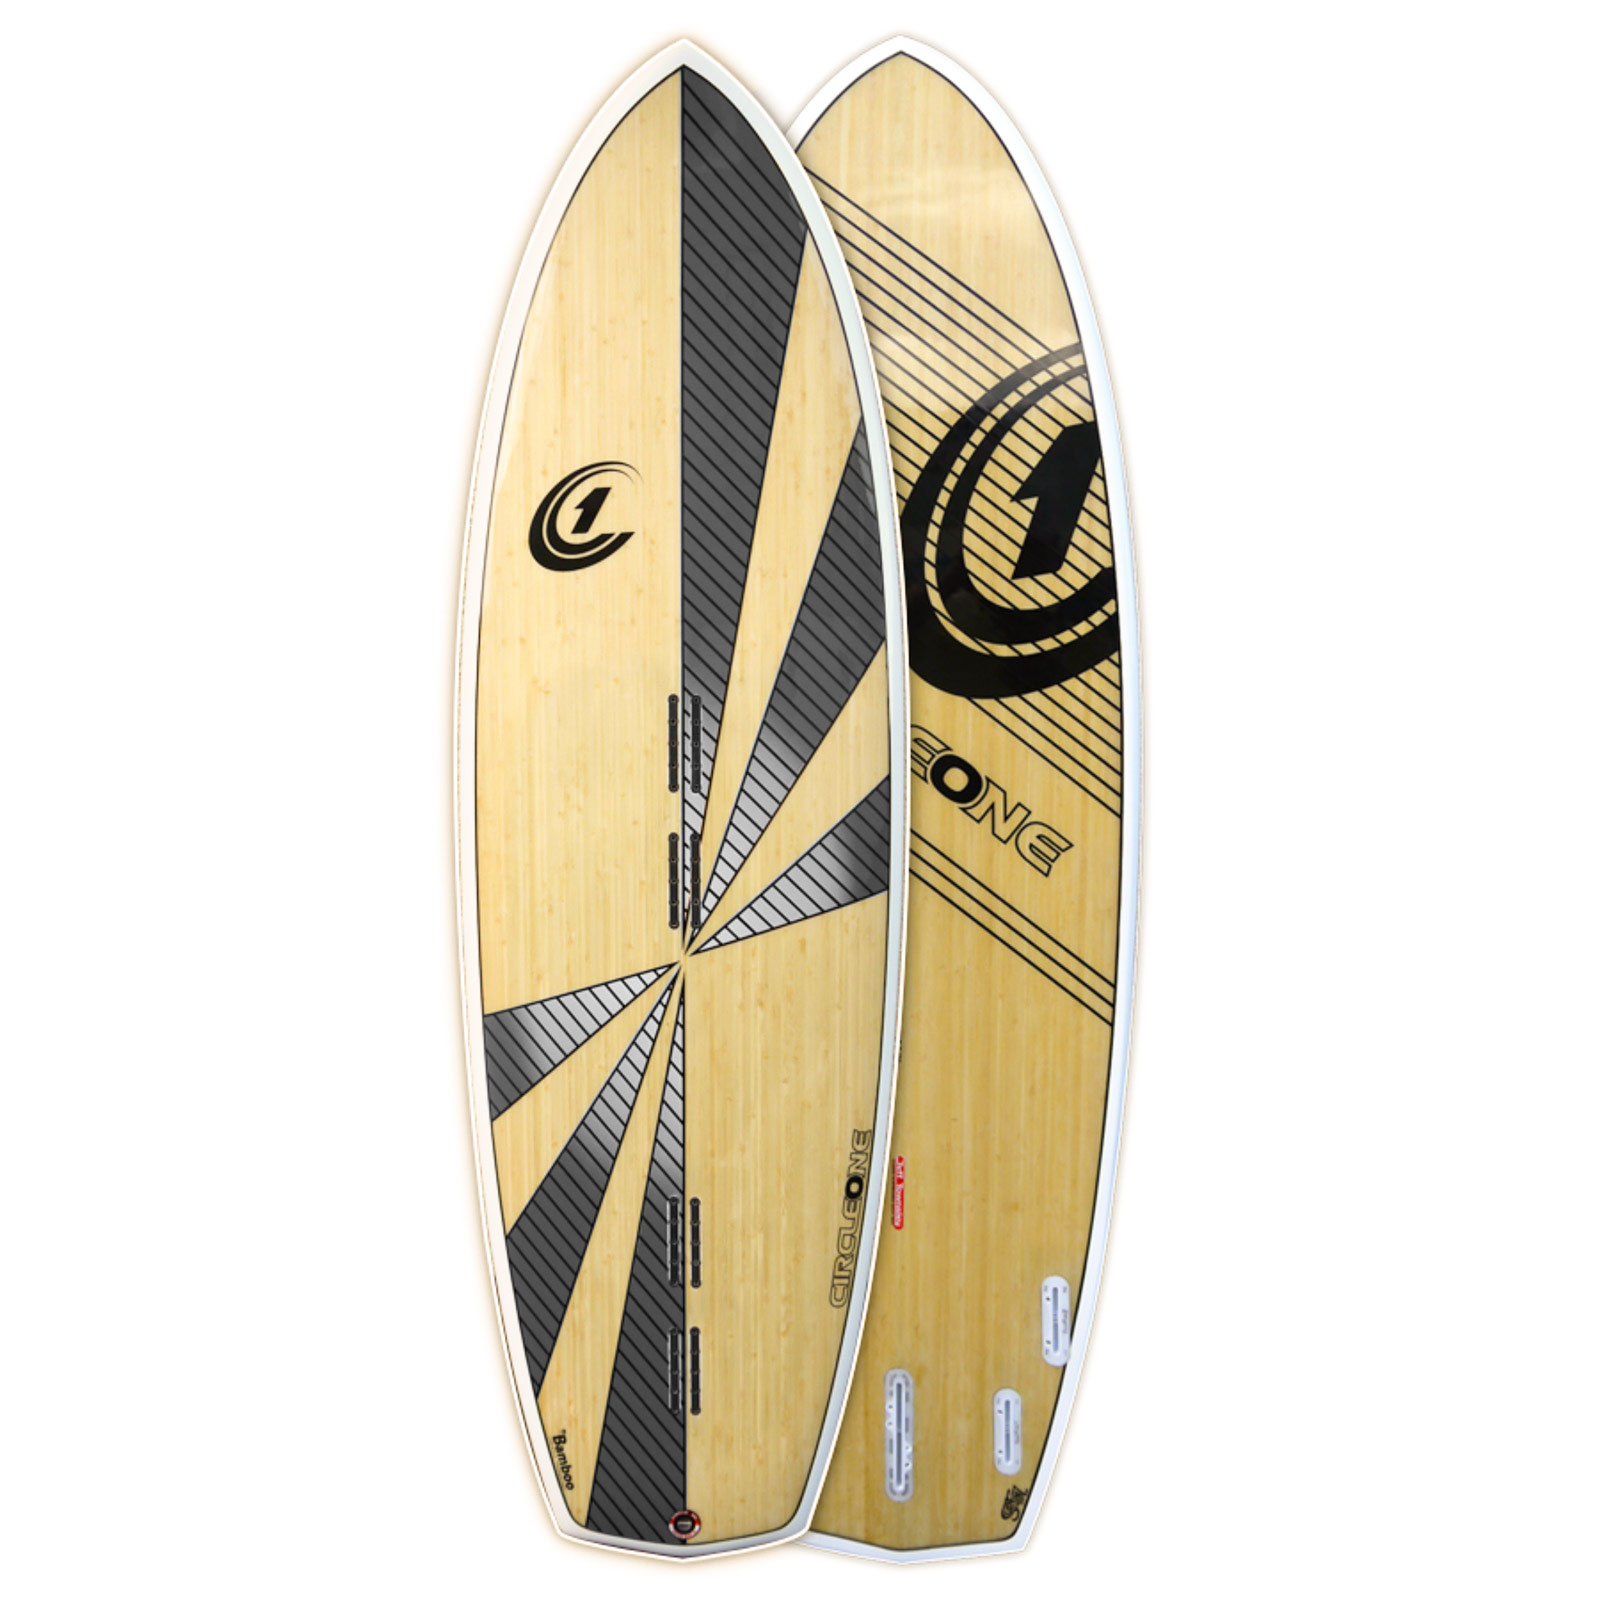 circle-one-kite-board-5-10-grey-01